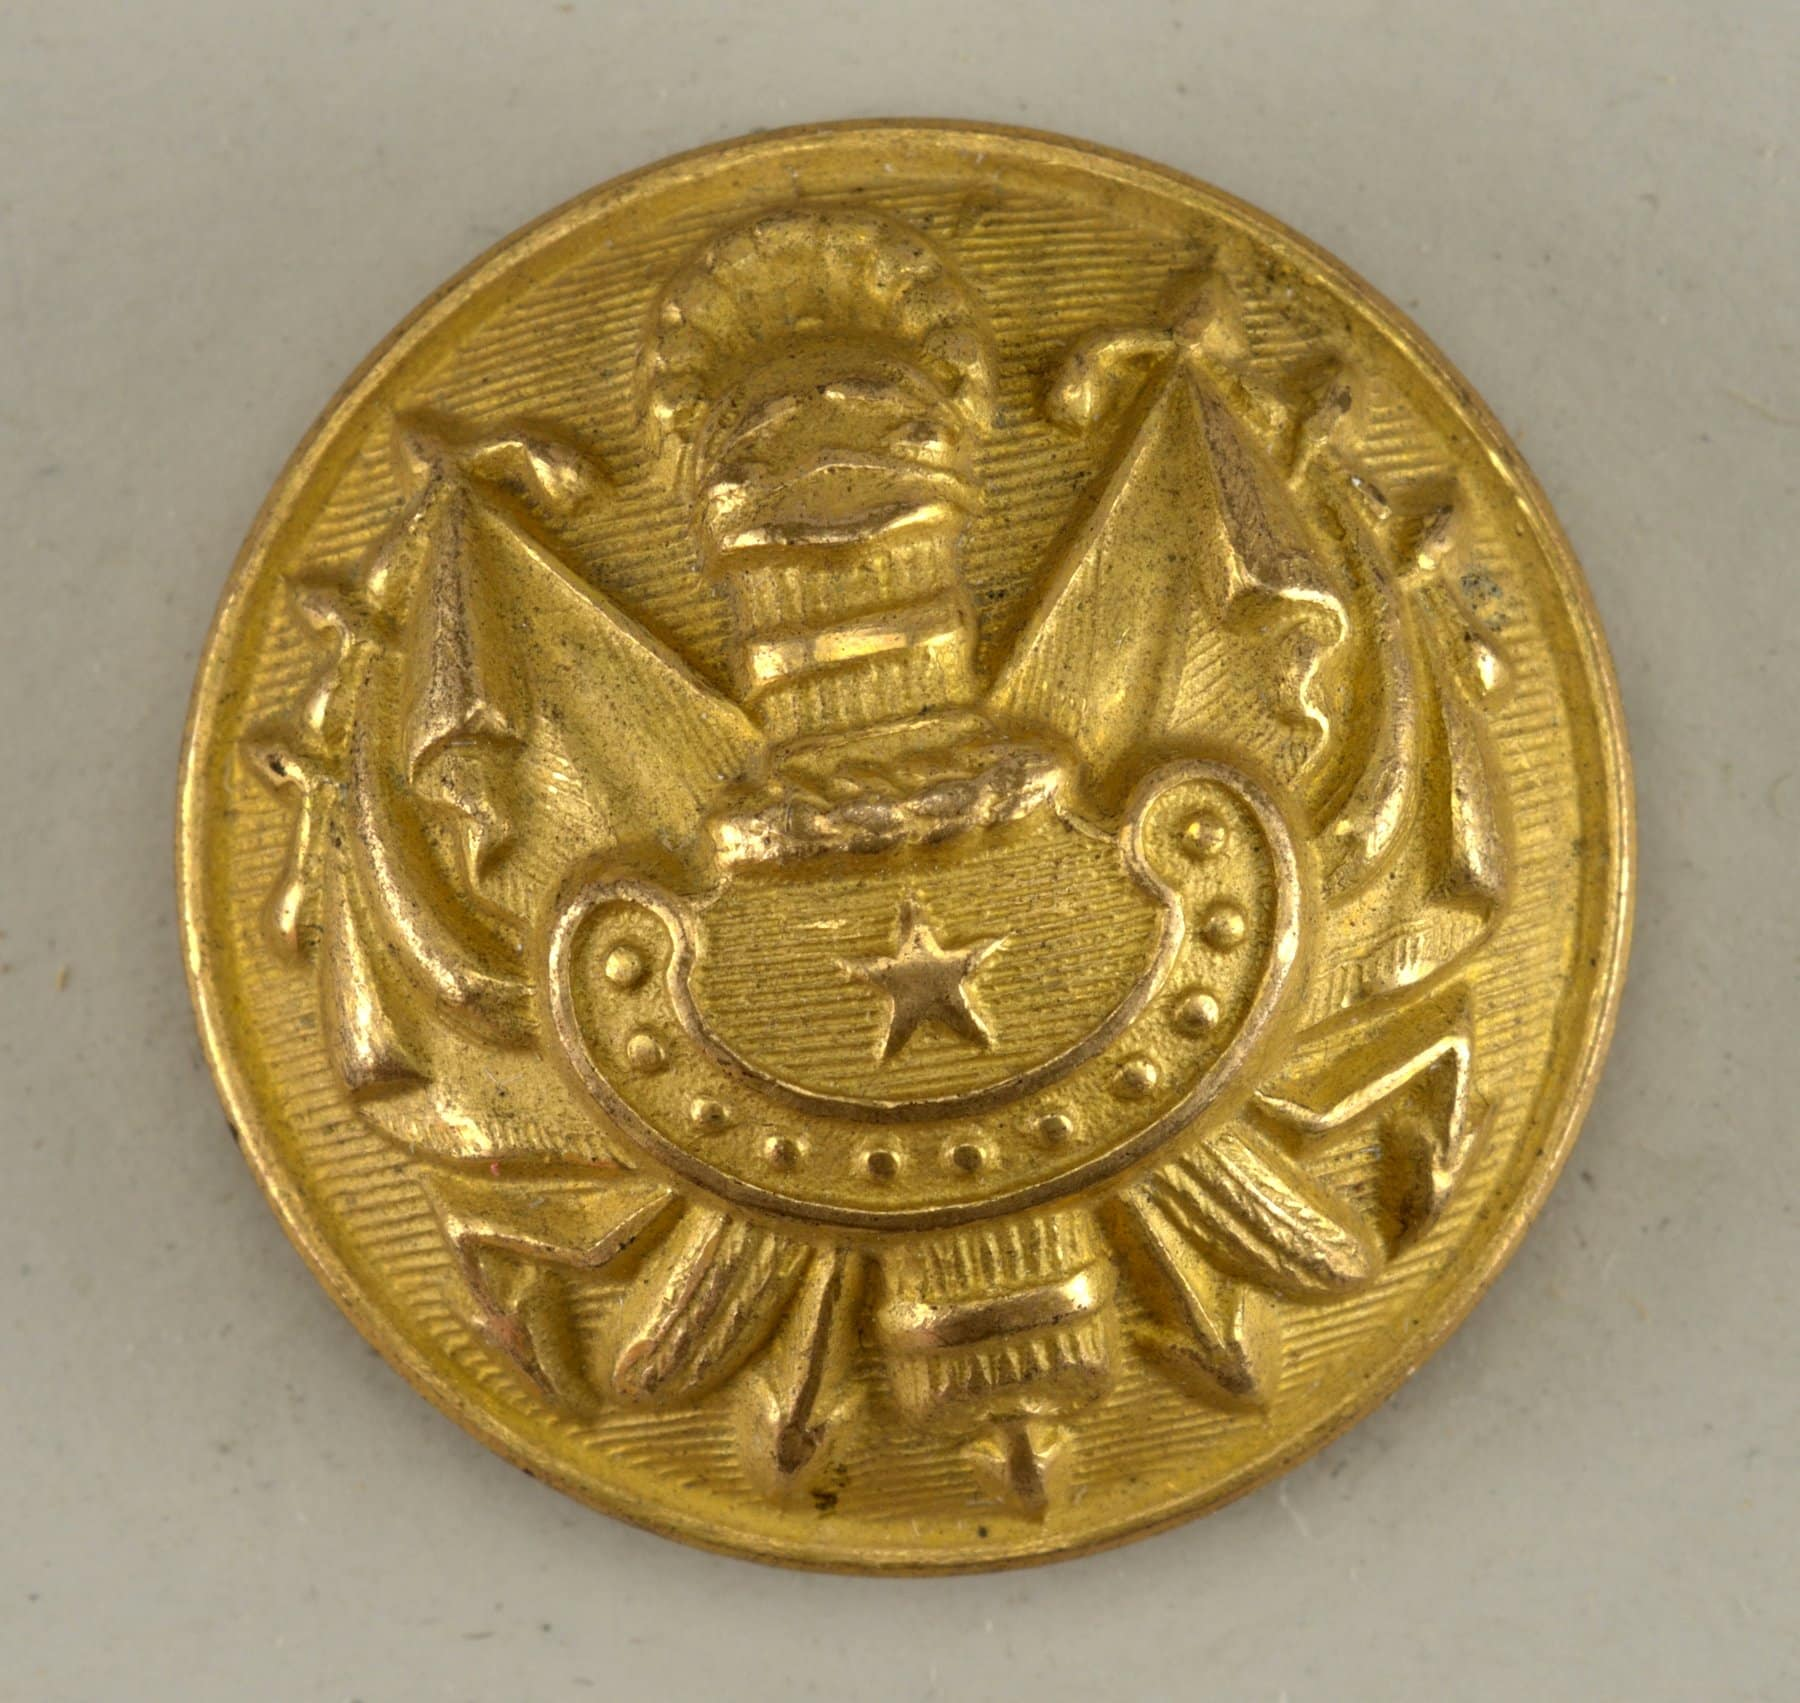 Golden button - officer in the general army 1852-1870